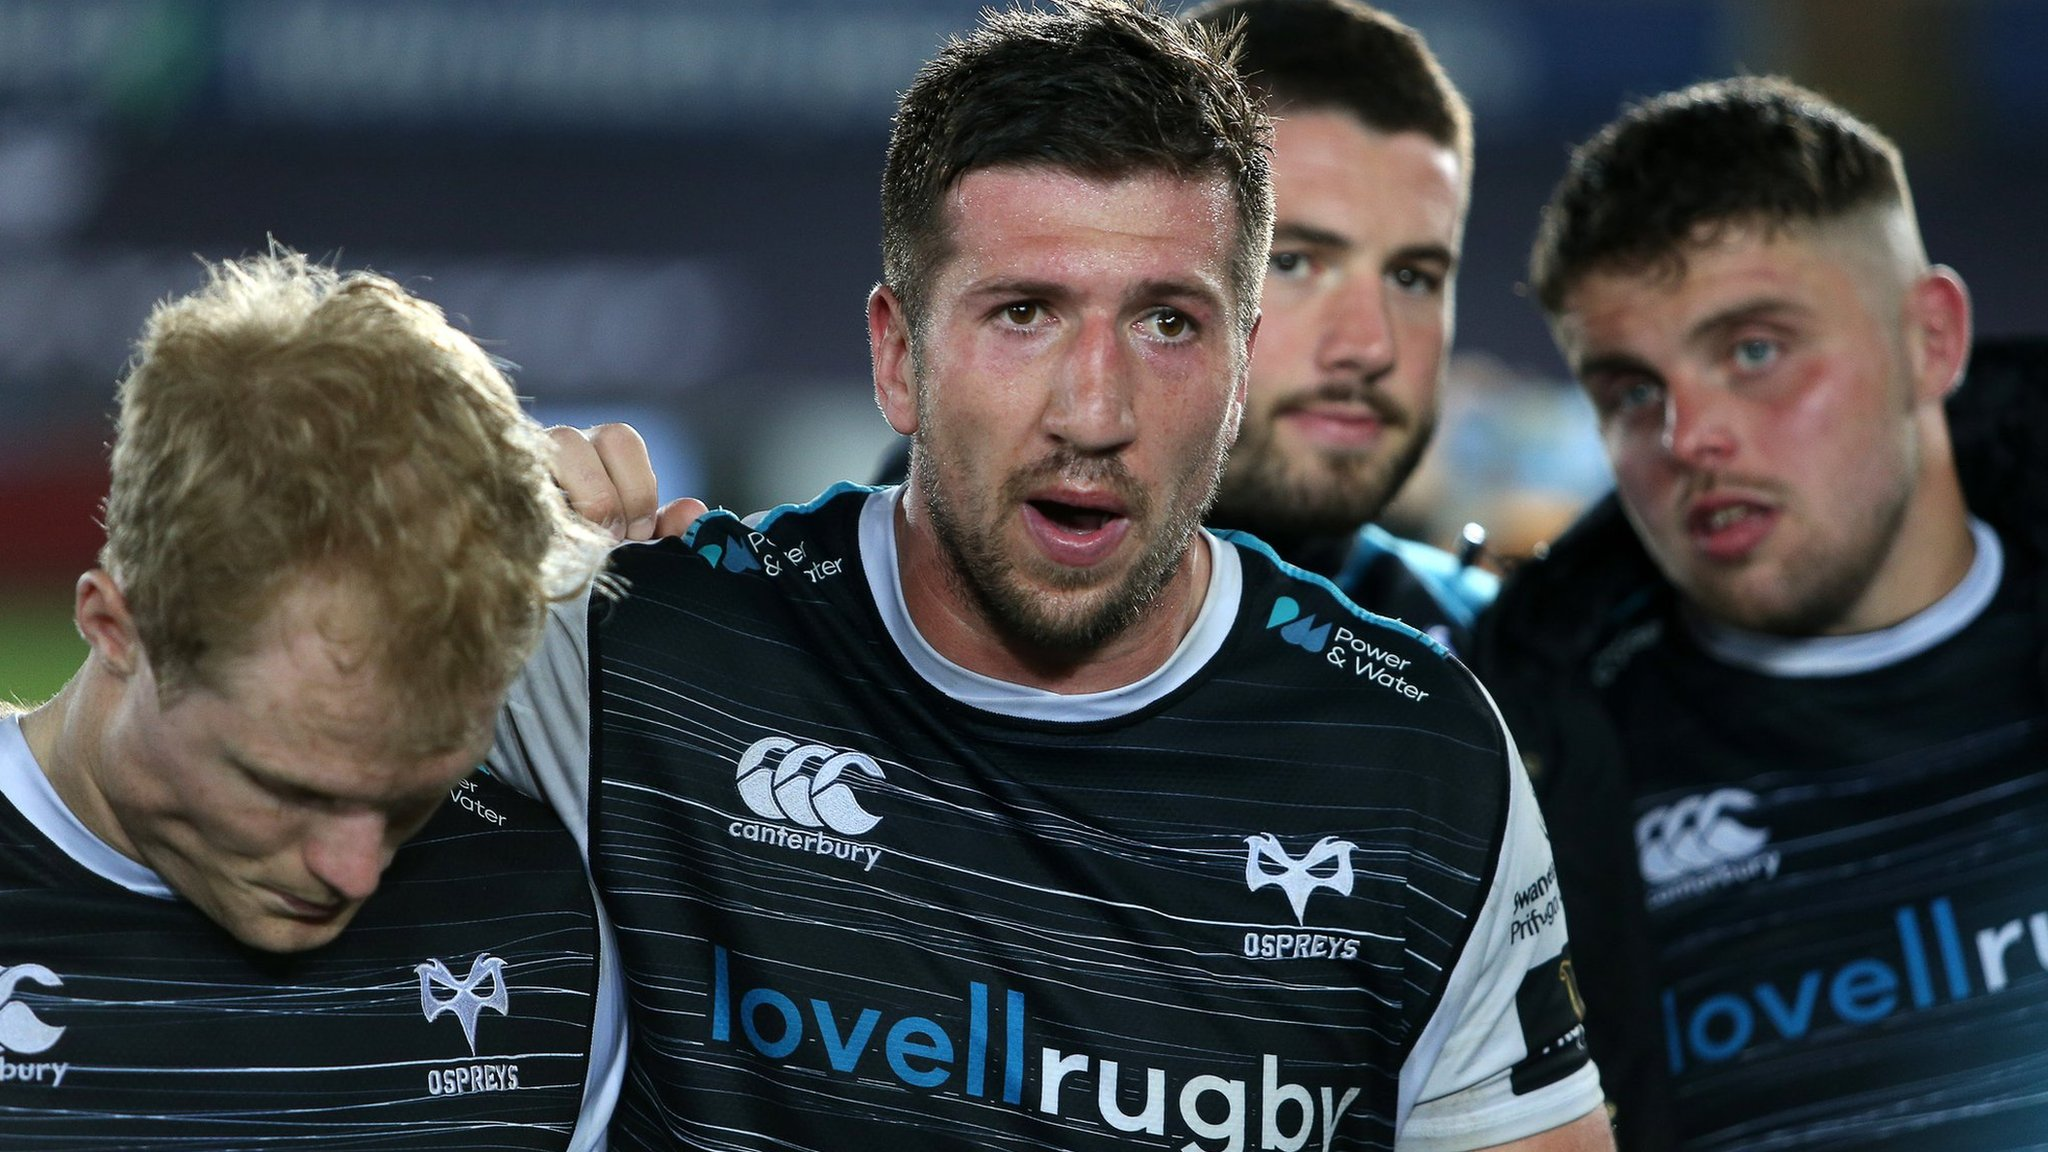 Ospreys overcome sleepless nights to take place among European elite